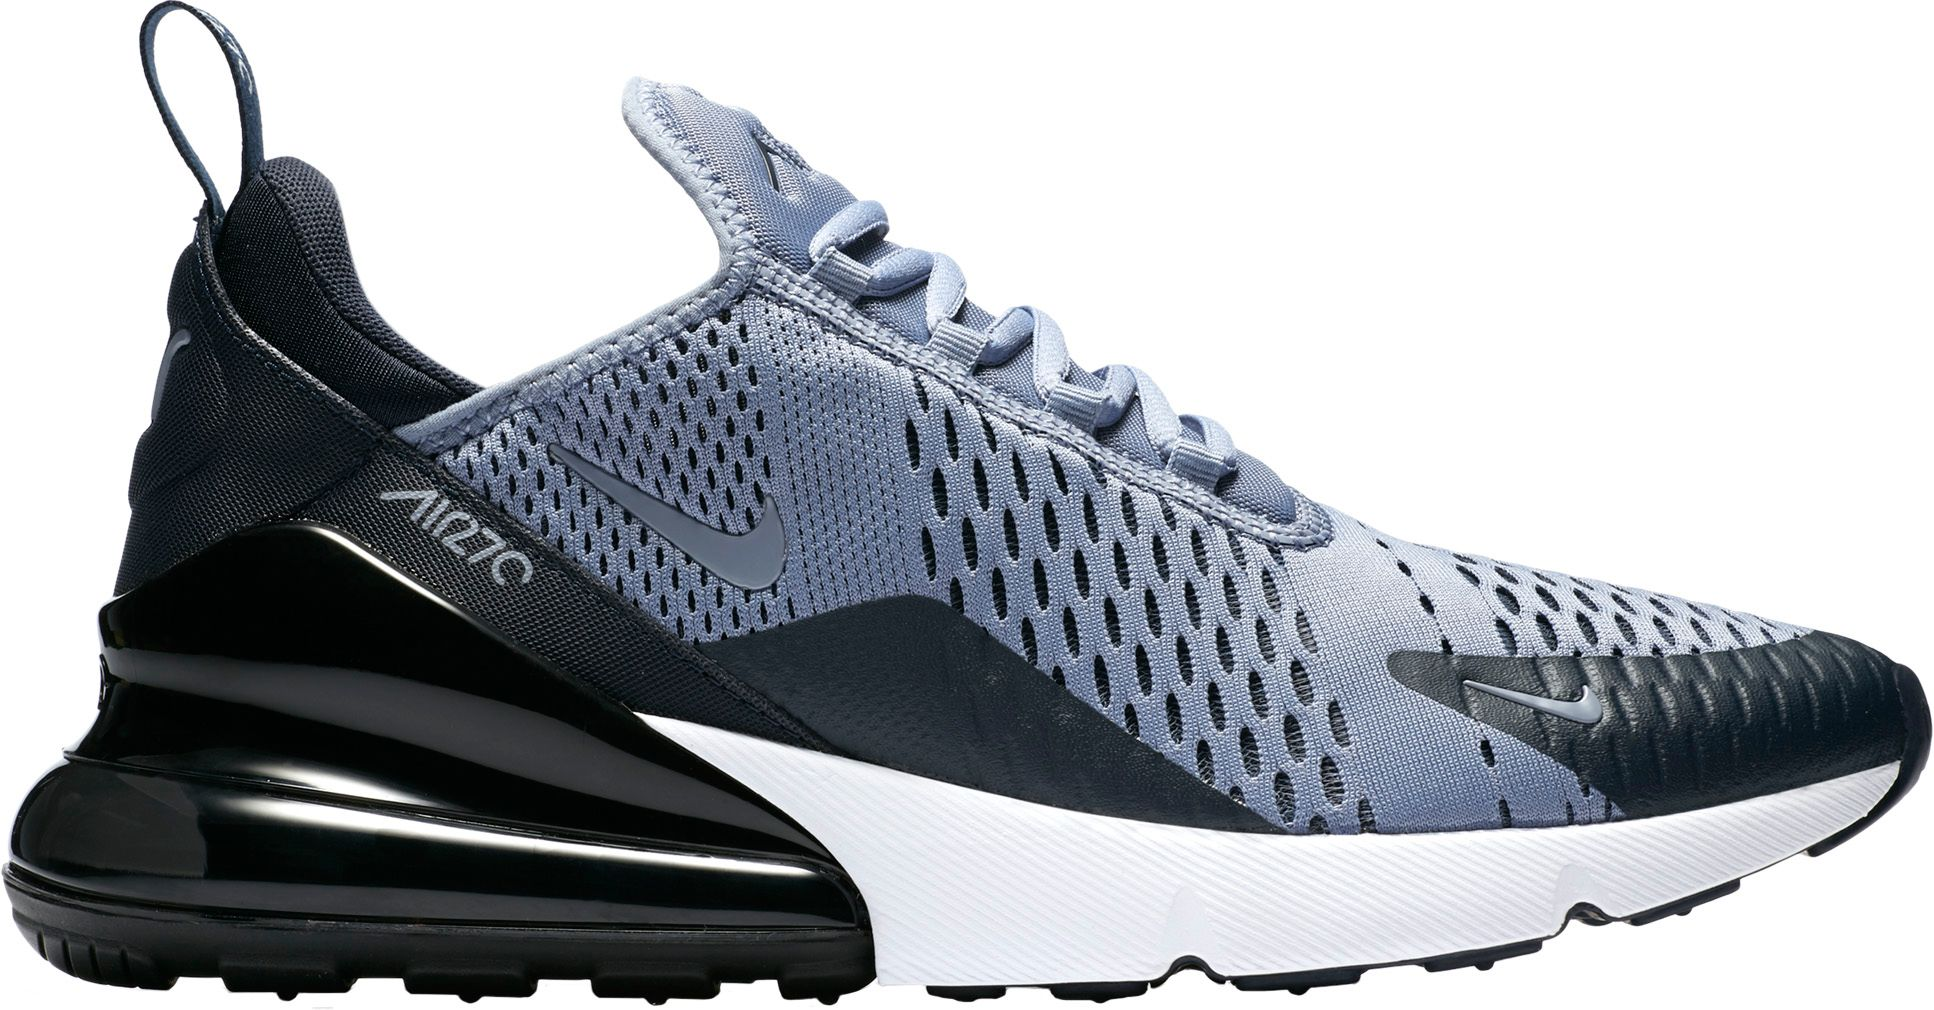 Nike Air Max 270 | Best Price Guarantee at DICK'S